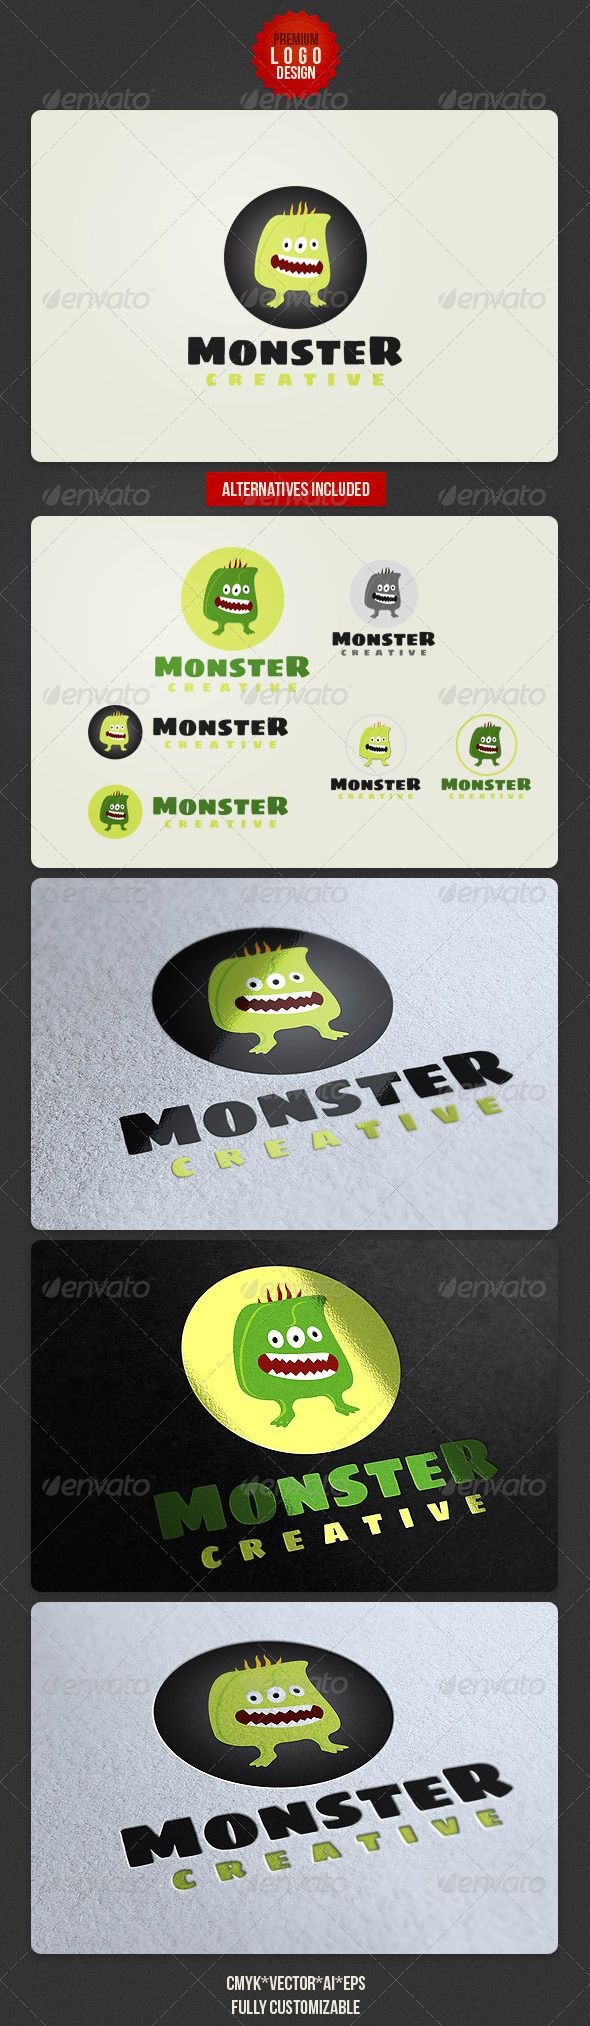 Funny Monster Logo  #GraphicRiver         Funnyn and creative vector logo template for your project.  	 CMYK , Adobe Illustrator AI file, EPS file, transparent PNG file.  	 Free font: Ubuntu –  .fontsquirrel /fonts/sigmar  	 Enjoy      Created: 19November12 GraphicsFilesIncluded: TransparentPNG #VectorEPS #AIIllustrator Layered: Yes MinimumAdobeCSVersion: CS Resolution: Resizable Tags: brand #branding #cartoonlogo #coollogo #corporate #creative #creativelogo #design #designer #funnylogo…